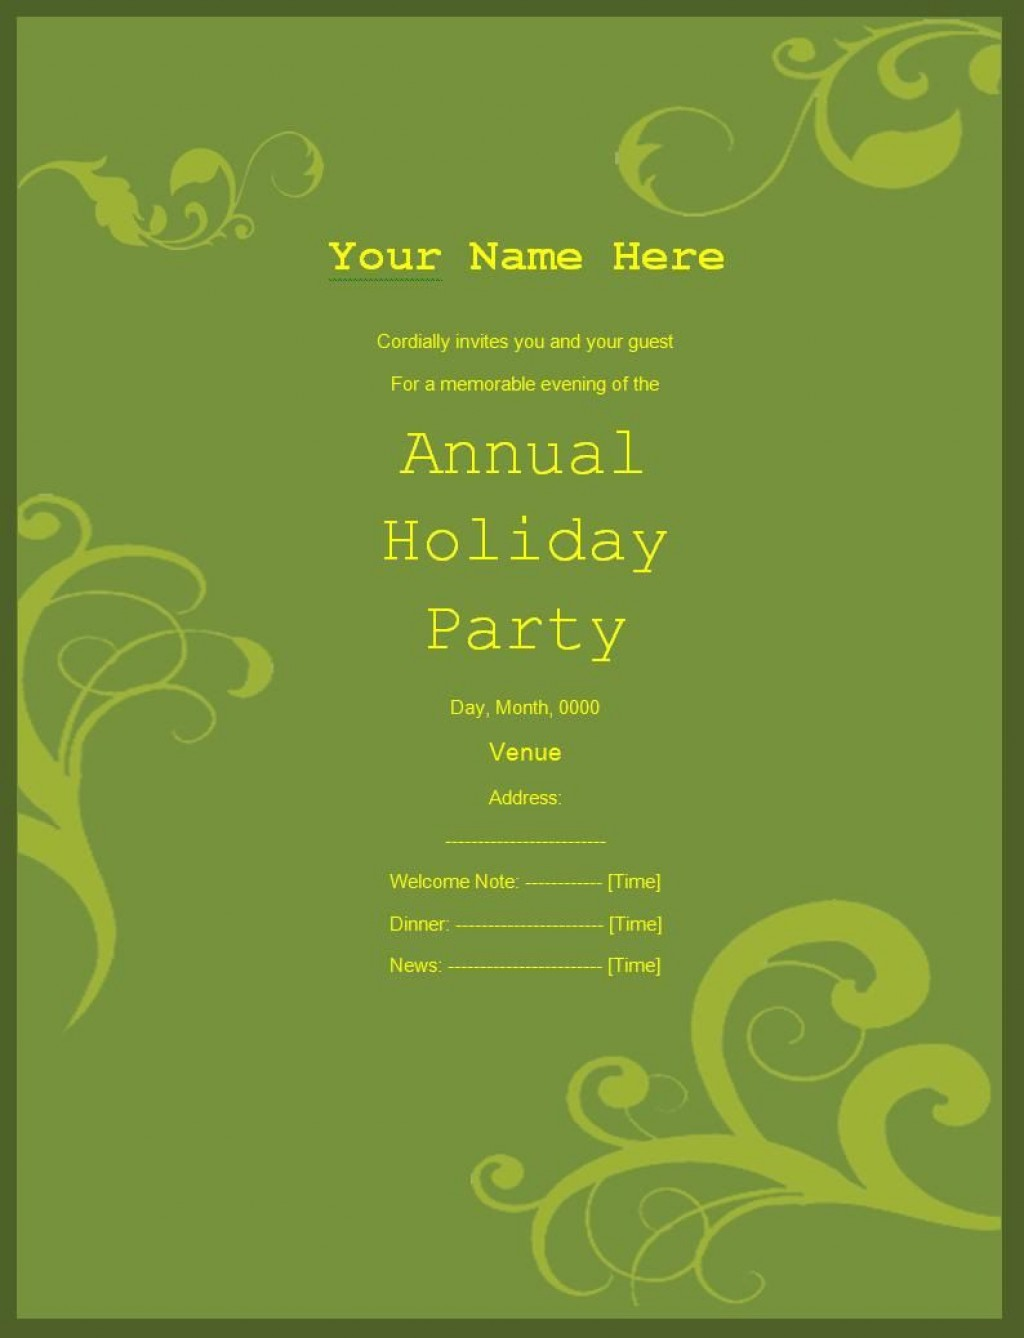 009 Shocking Retirement Party Invite Template Word Free Example Large